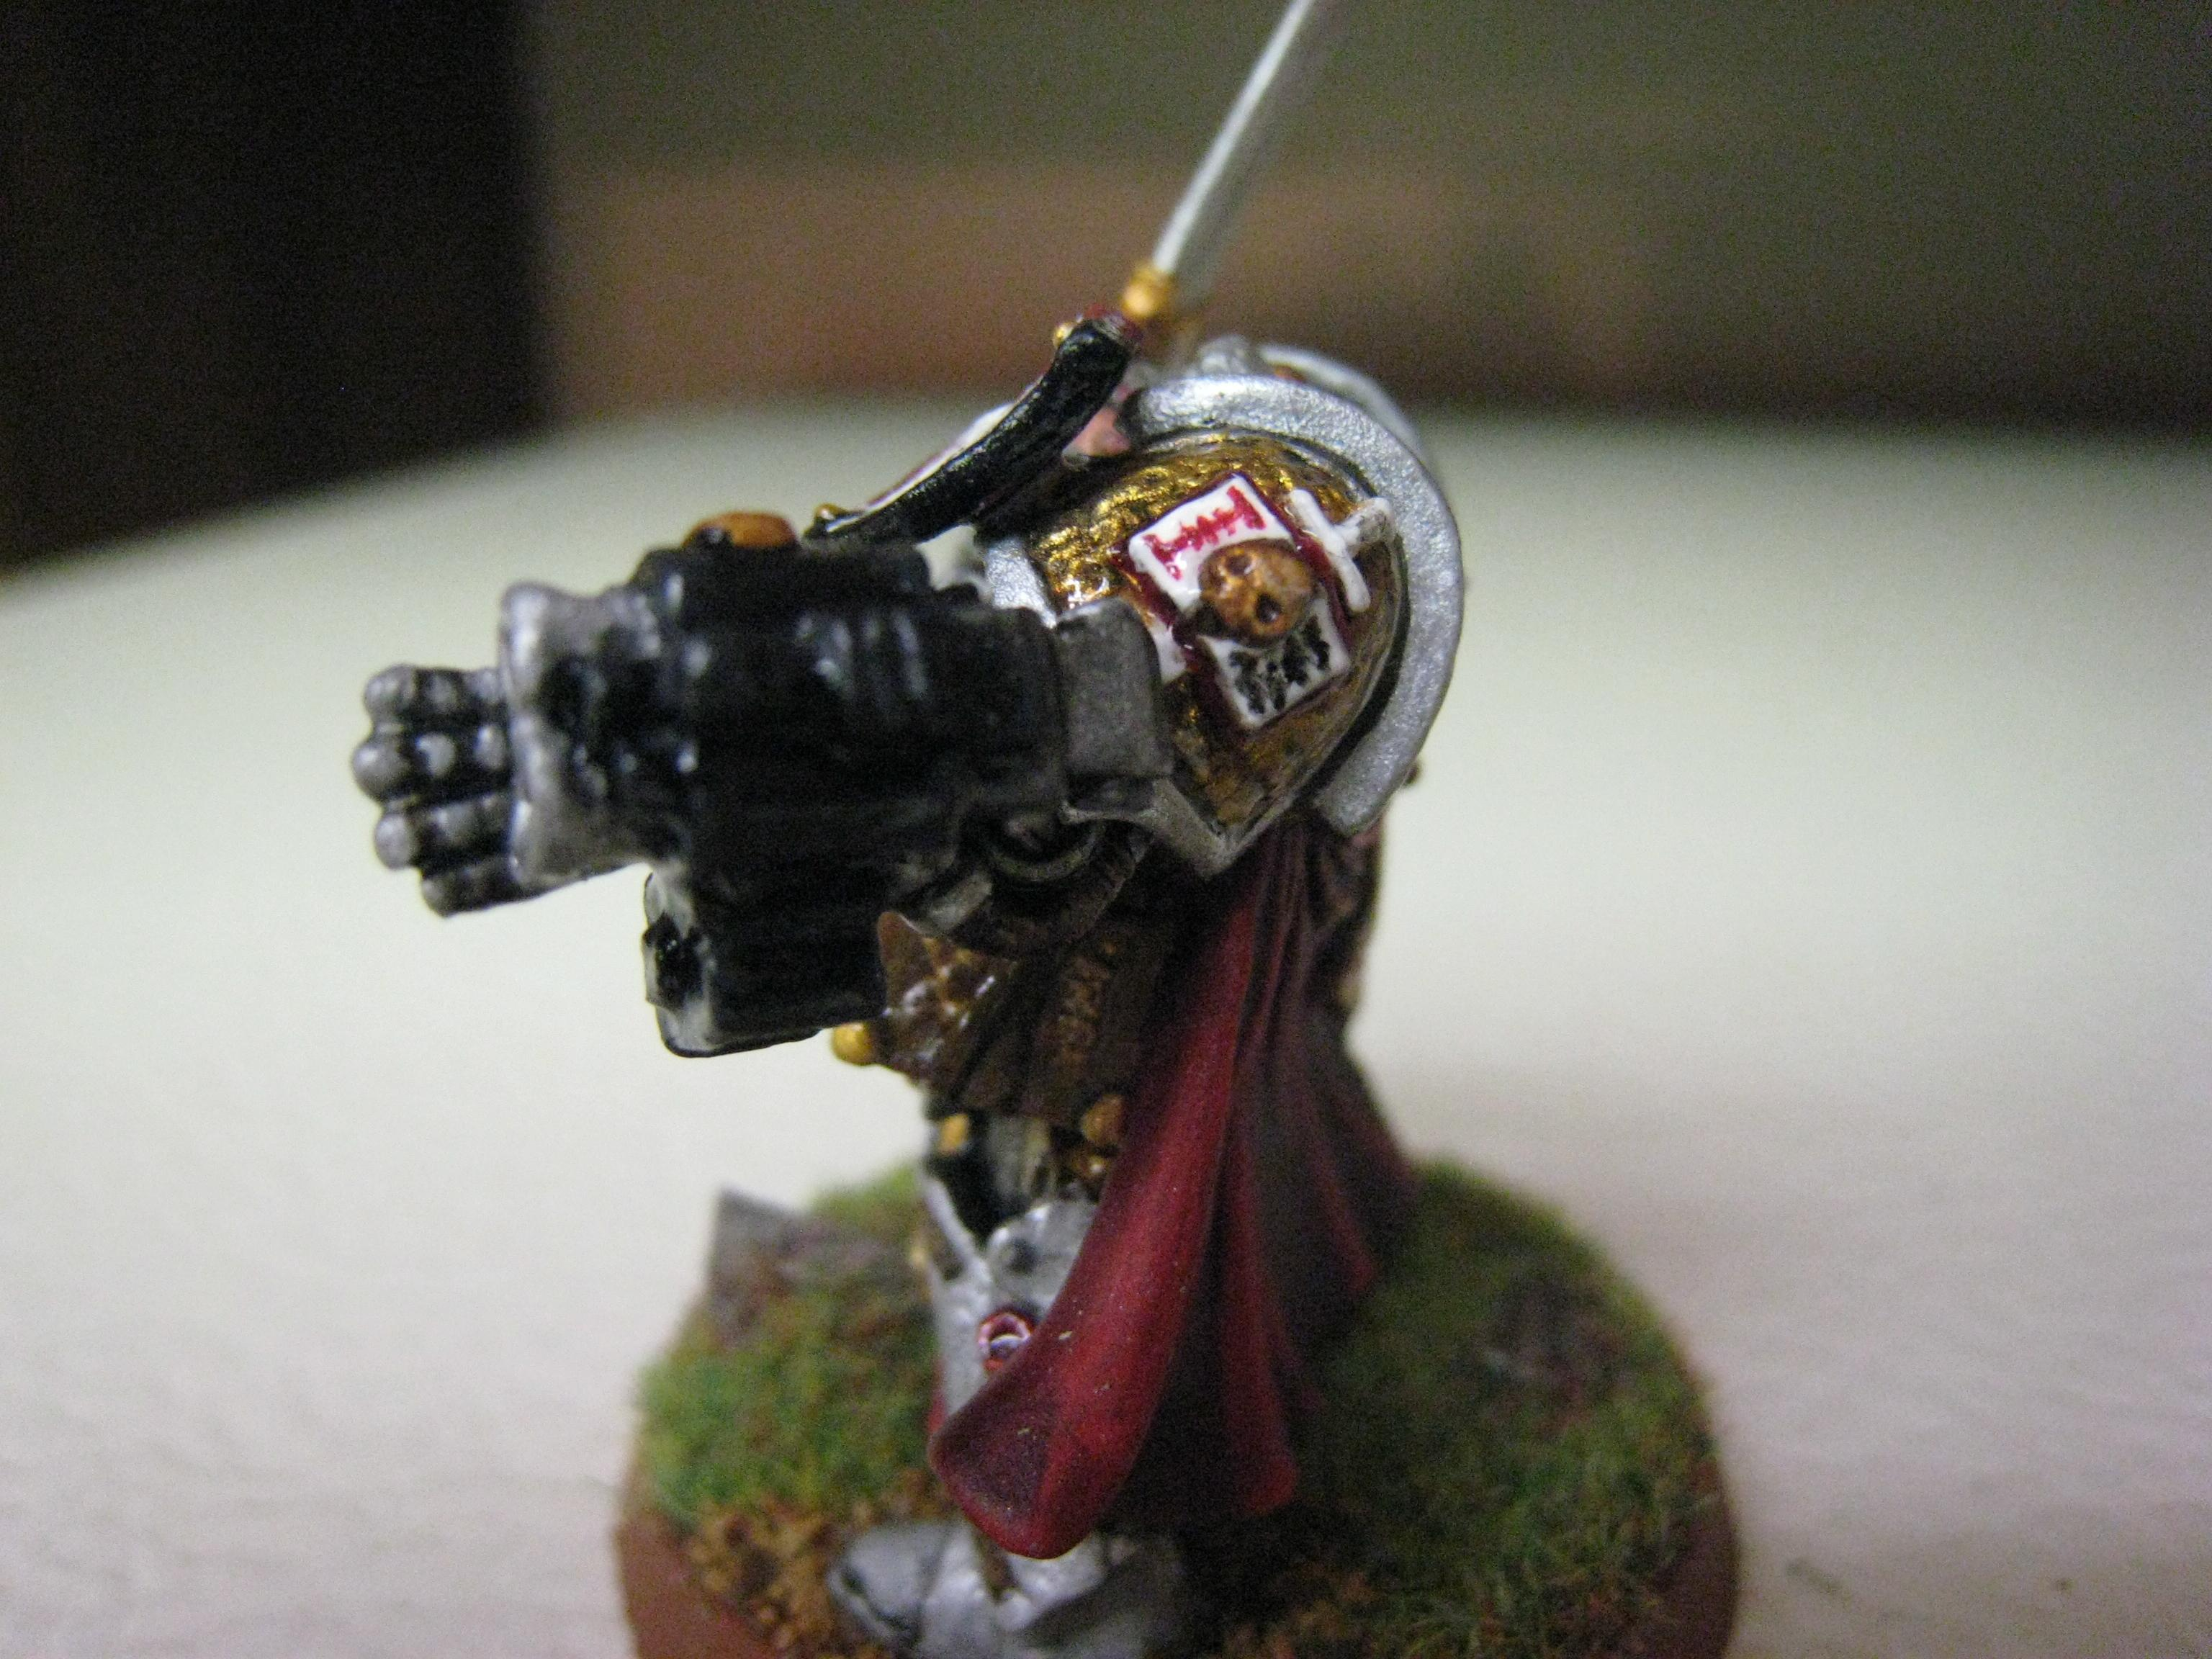 Daemonhunters, Grey Knights, Inquisition, Space Marines, Stern, Warhammer 40,000